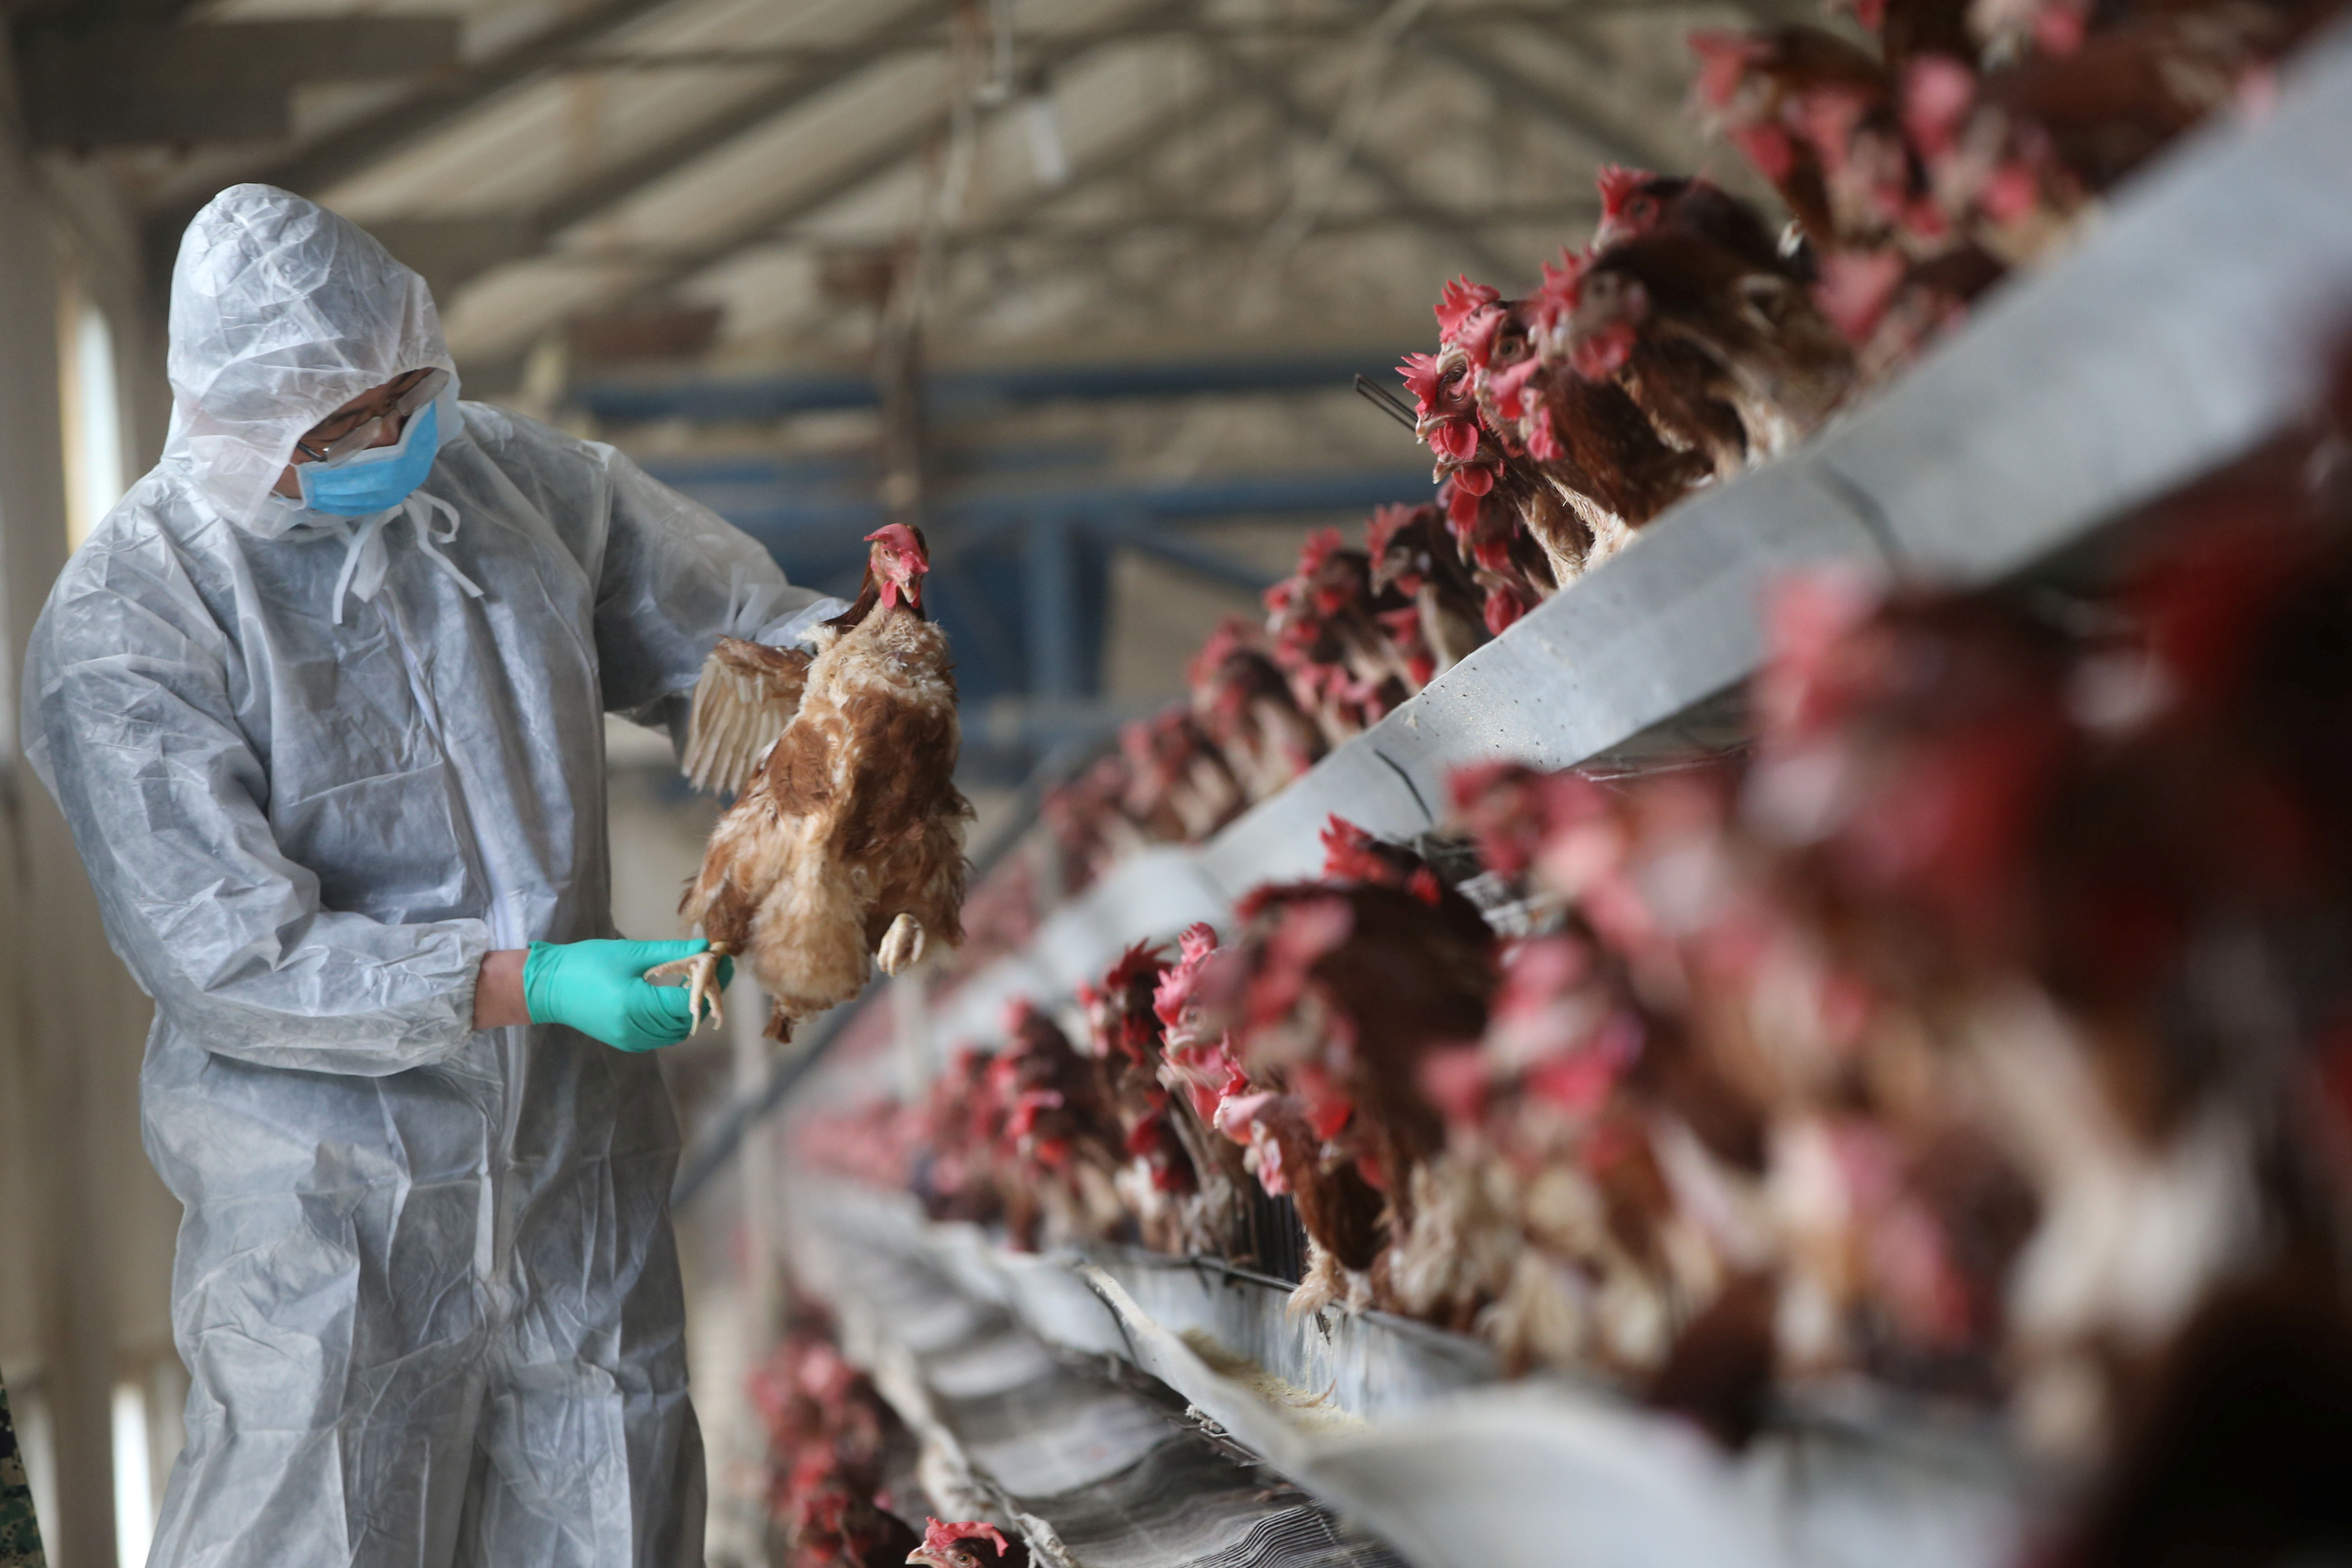 A quarantine researcher checks on a chicken at a poultry farm in Xiangyang, Hubei province, China, February 3, 2017.  REUTERS/Stringer